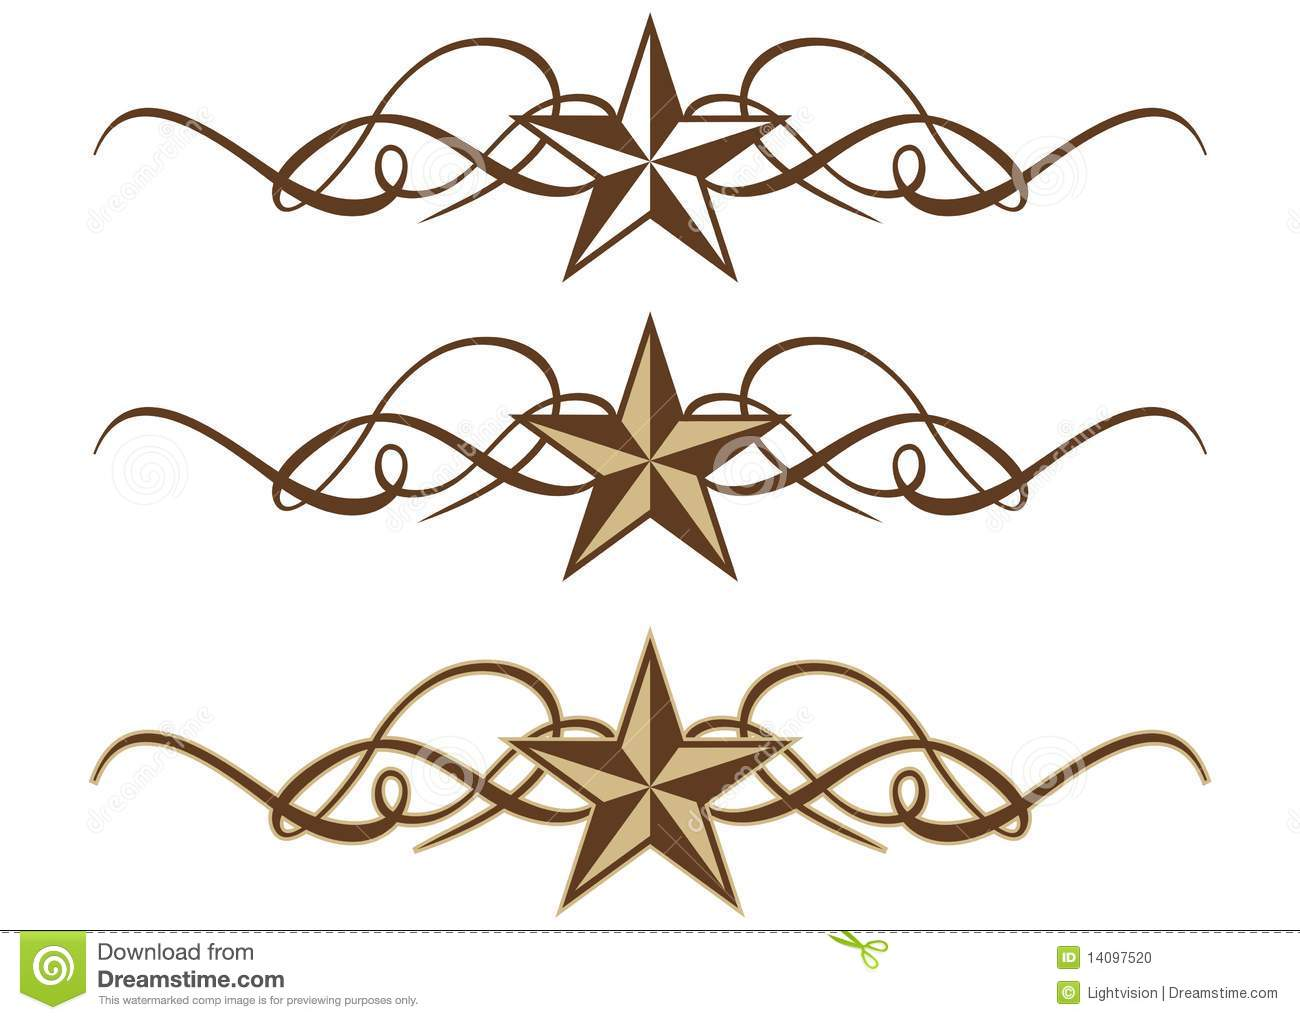 Wild West clipart star Drawings #6 Western clipart Download